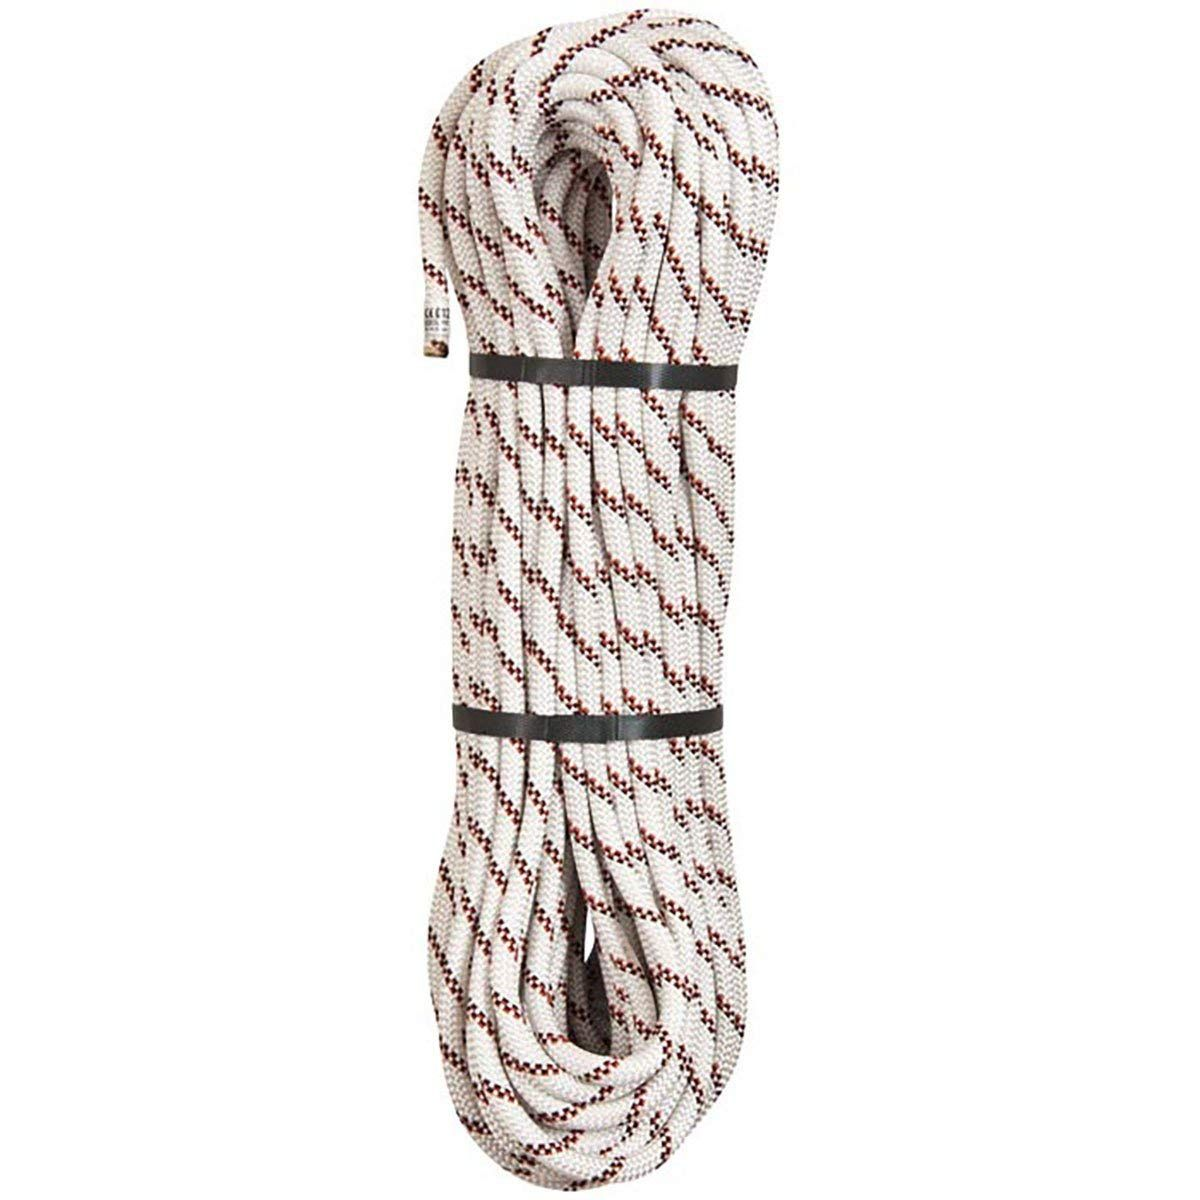 Edelweiss Static Rope 10 5mm See The Photo Link Even More Details This Is An Affiliate Link Climbingrope Cord Webbin Static Rope Rope Stuff To Buy